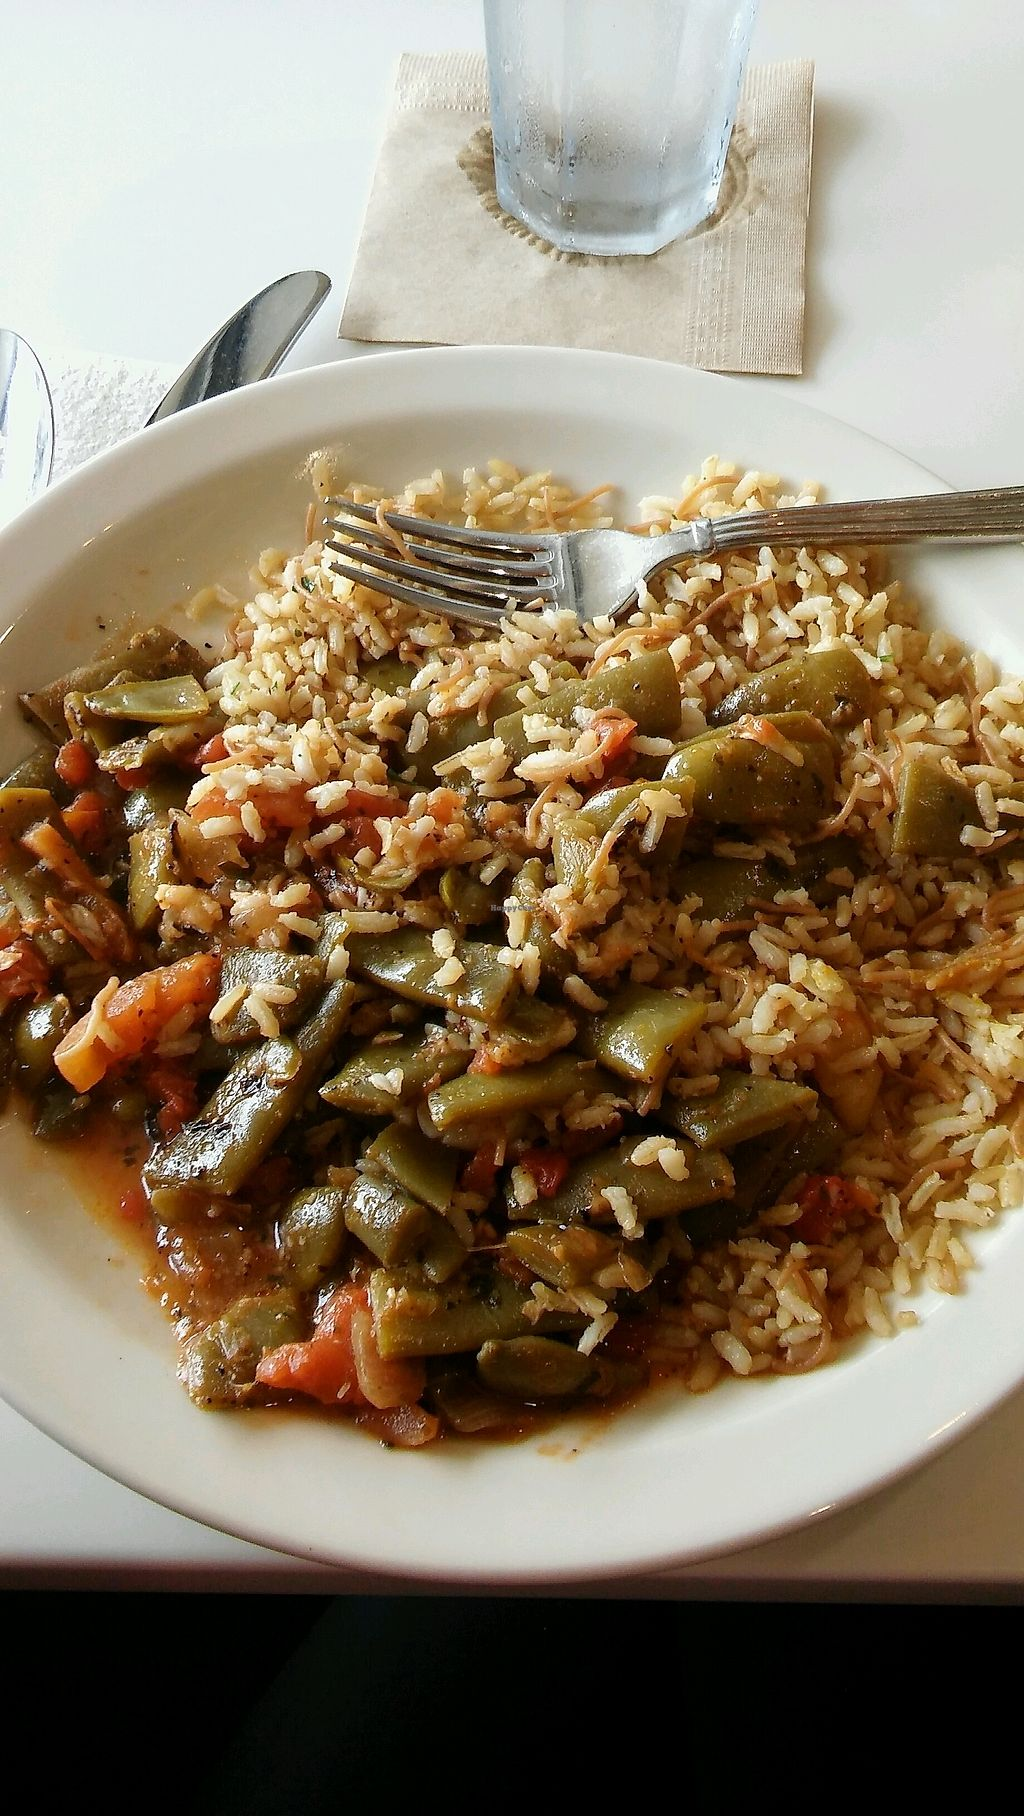 """Photo of Aladdin's Eatery  by <a href=""""/members/profile/RachelLette"""">RachelLette</a> <br/>Amazing Vegan Dish, I can't remember the name of, sorry <br/> September 19, 2017  - <a href='/contact/abuse/image/42970/306222'>Report</a>"""